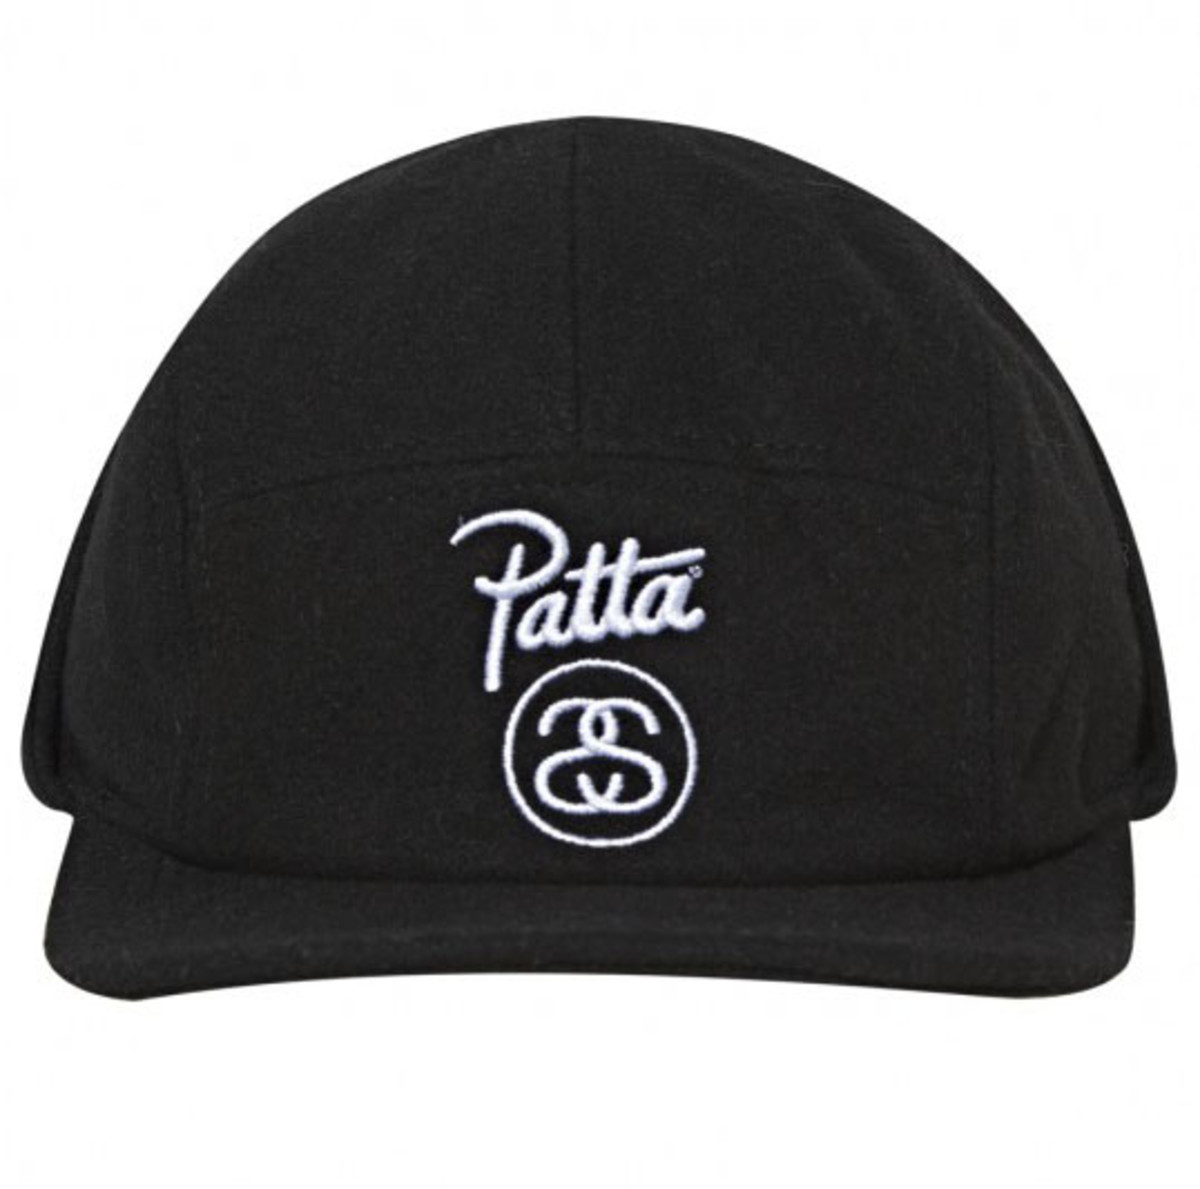 stussy-x-patta-10th-anniversary-collection-available-now-72